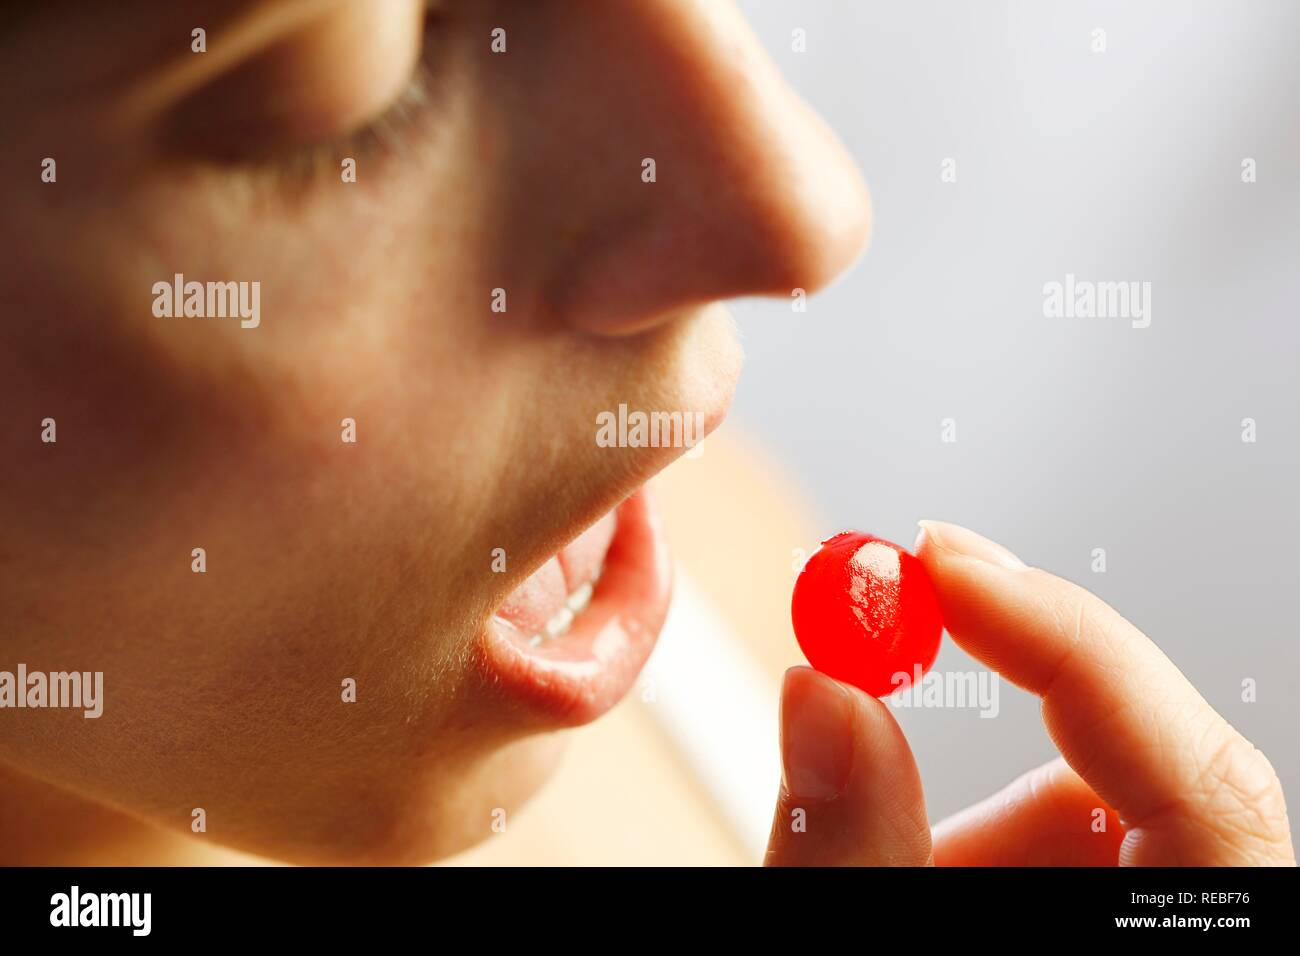 Young woman taking a throat lozenge - Stock Image